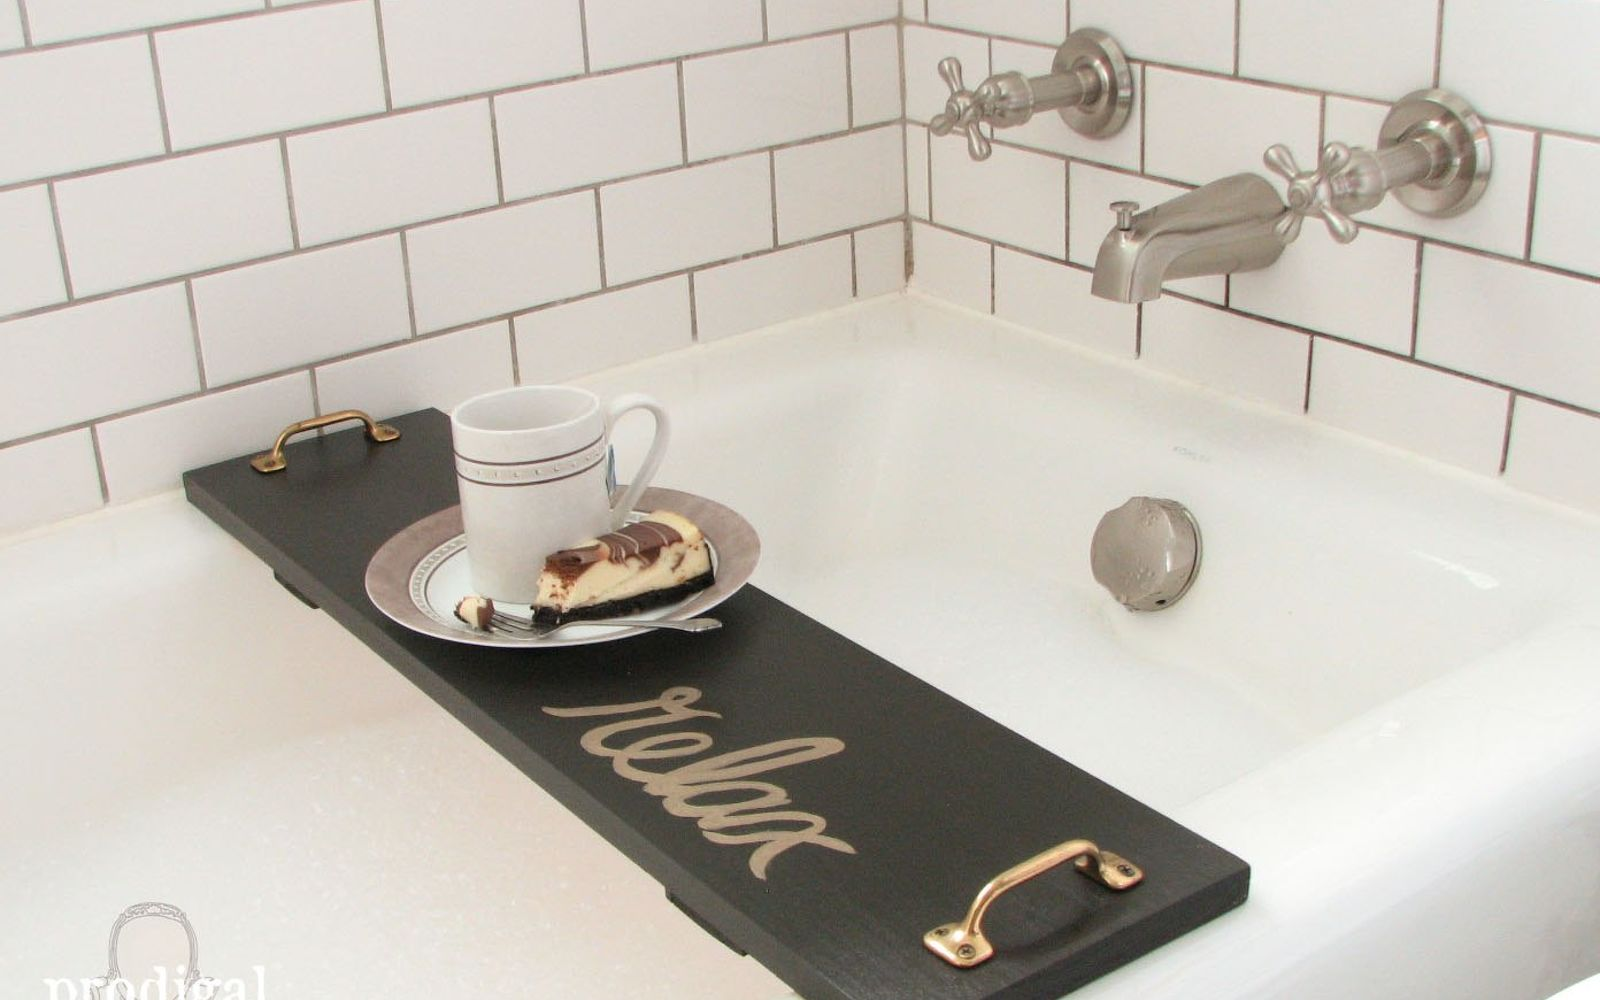 s 11 easy ways to refresh your old bathtub, Craft A Bath Tray For Reading